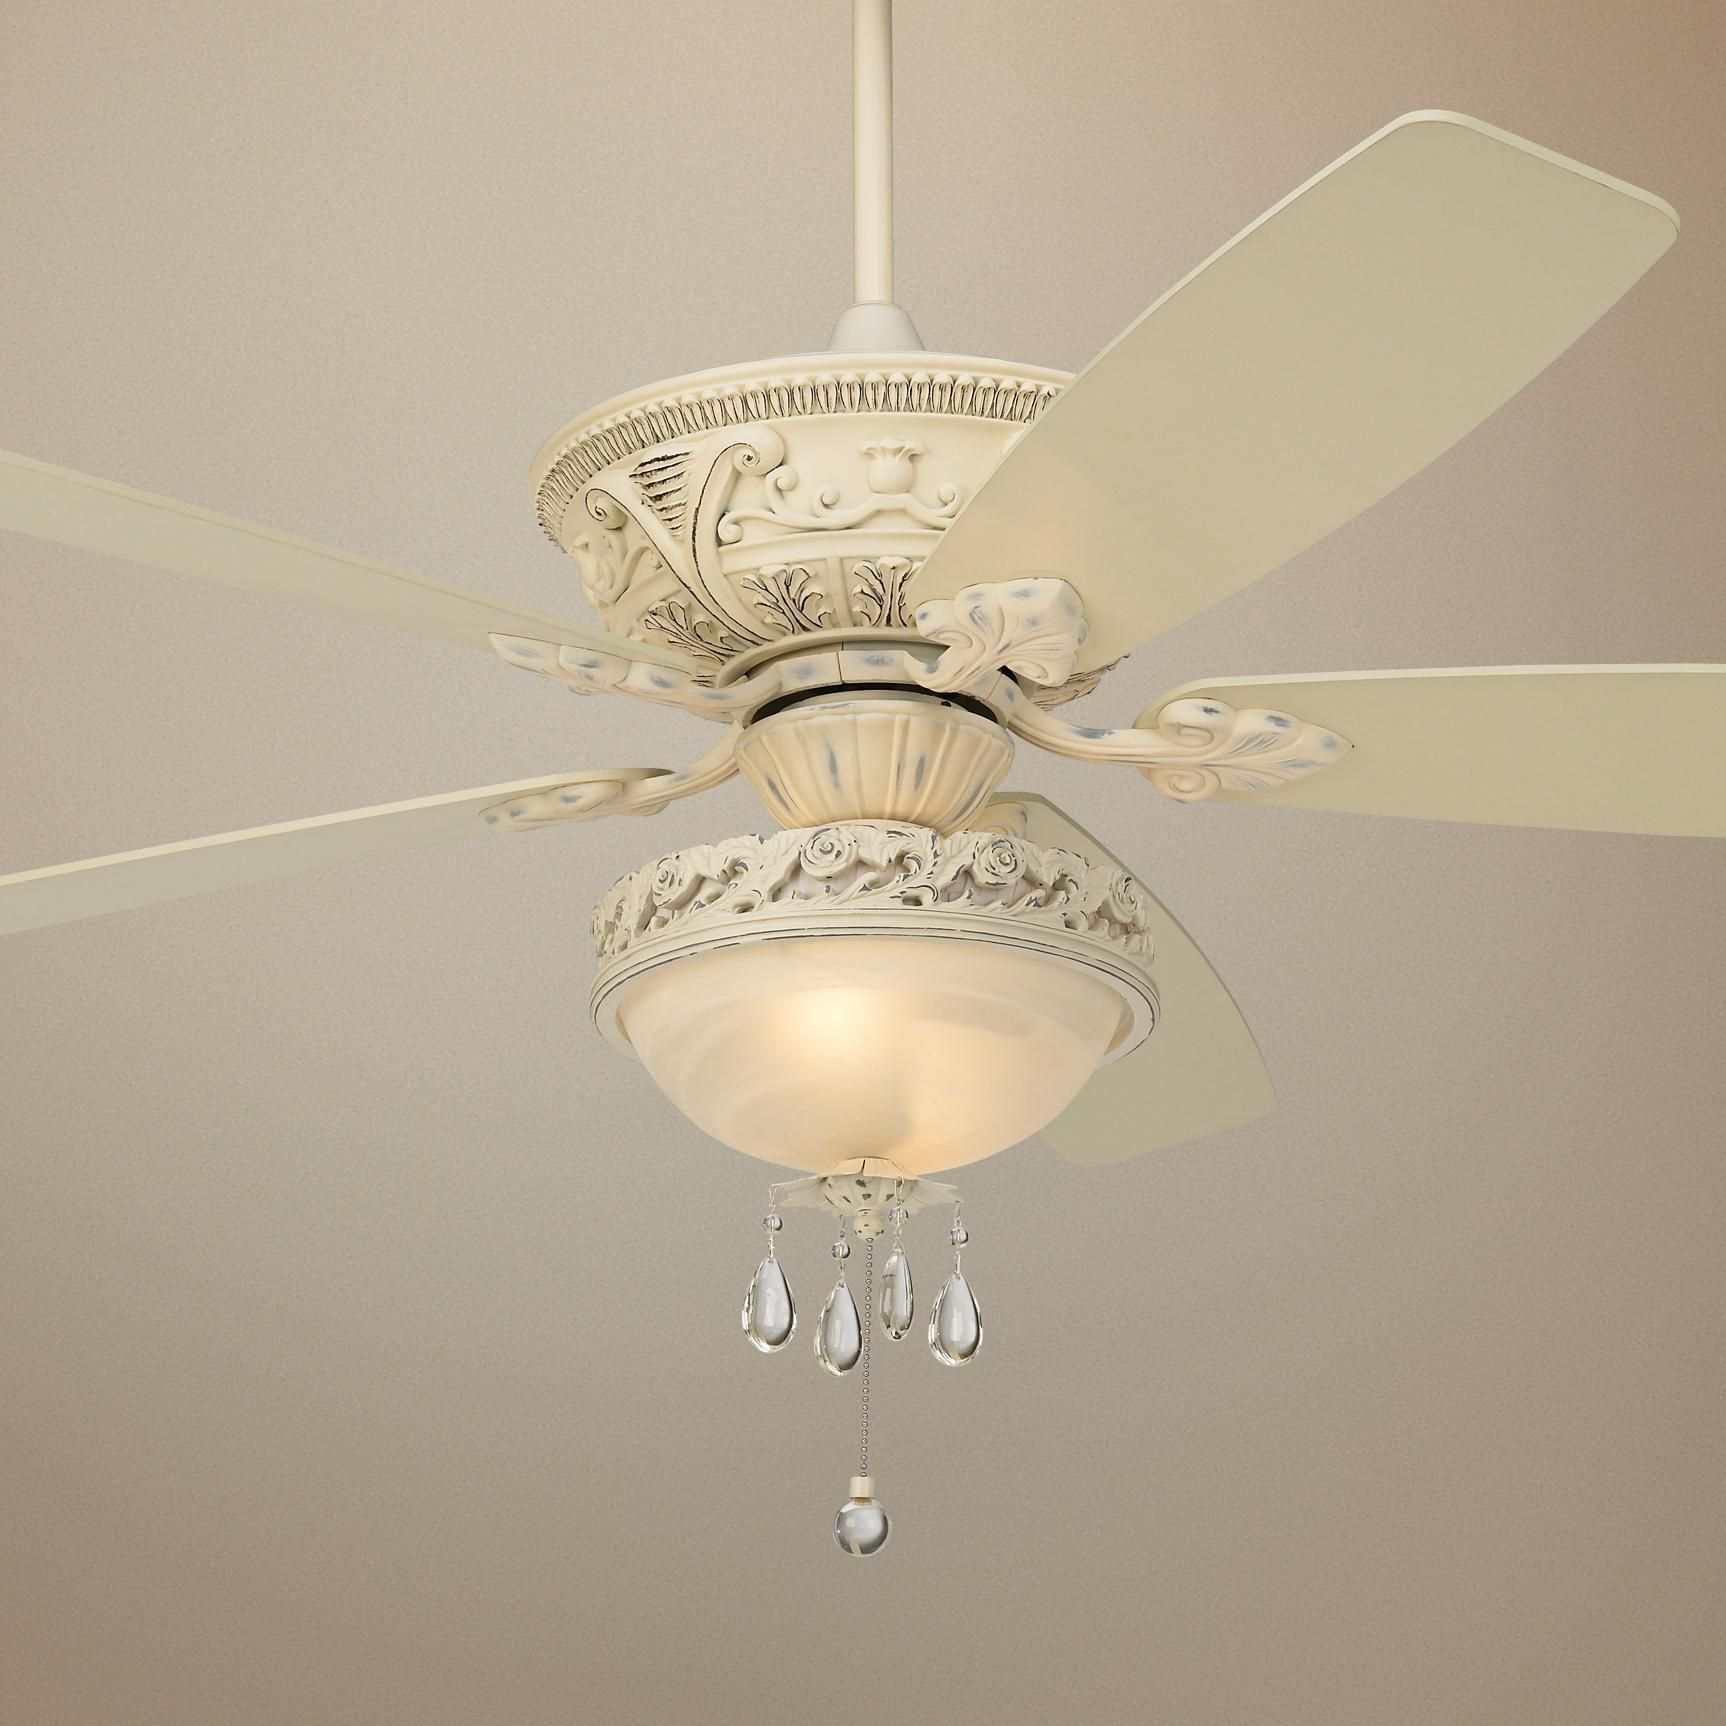 "60"" Casa Vieja Montego Rubbed White Finish Ceiling Fan"